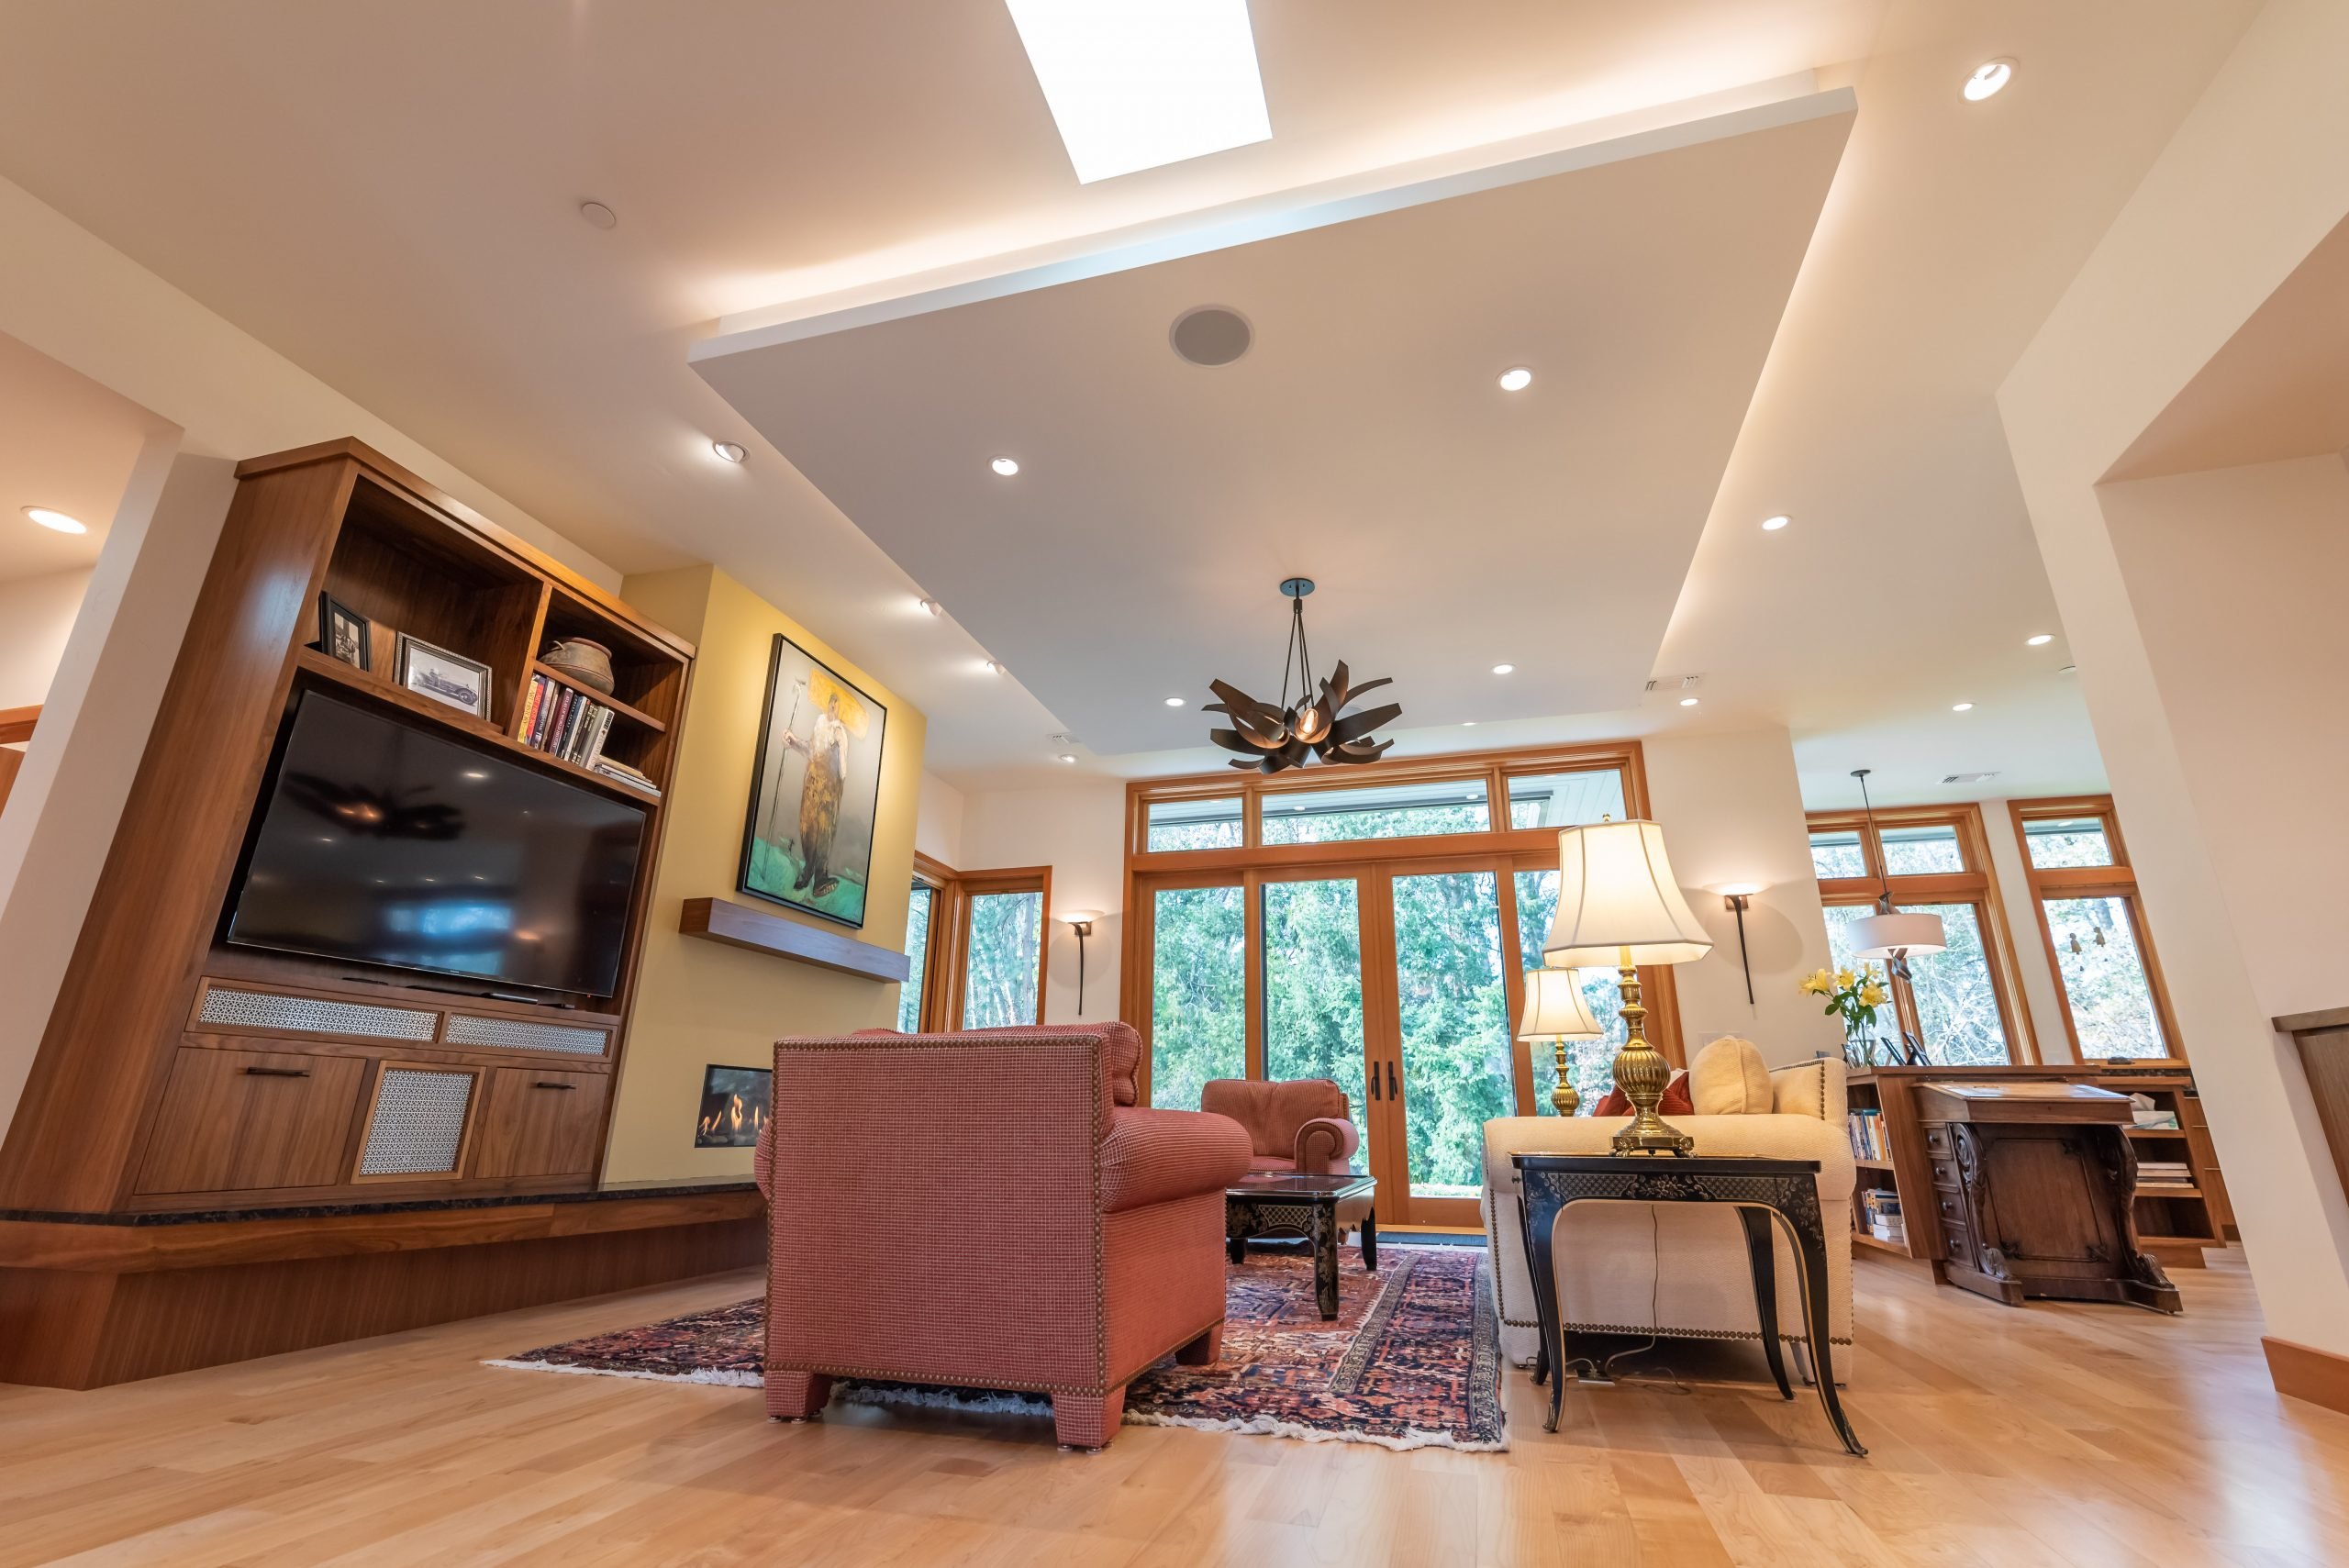 New Home Construction Living Room Wide Angle in Ashland Oregon